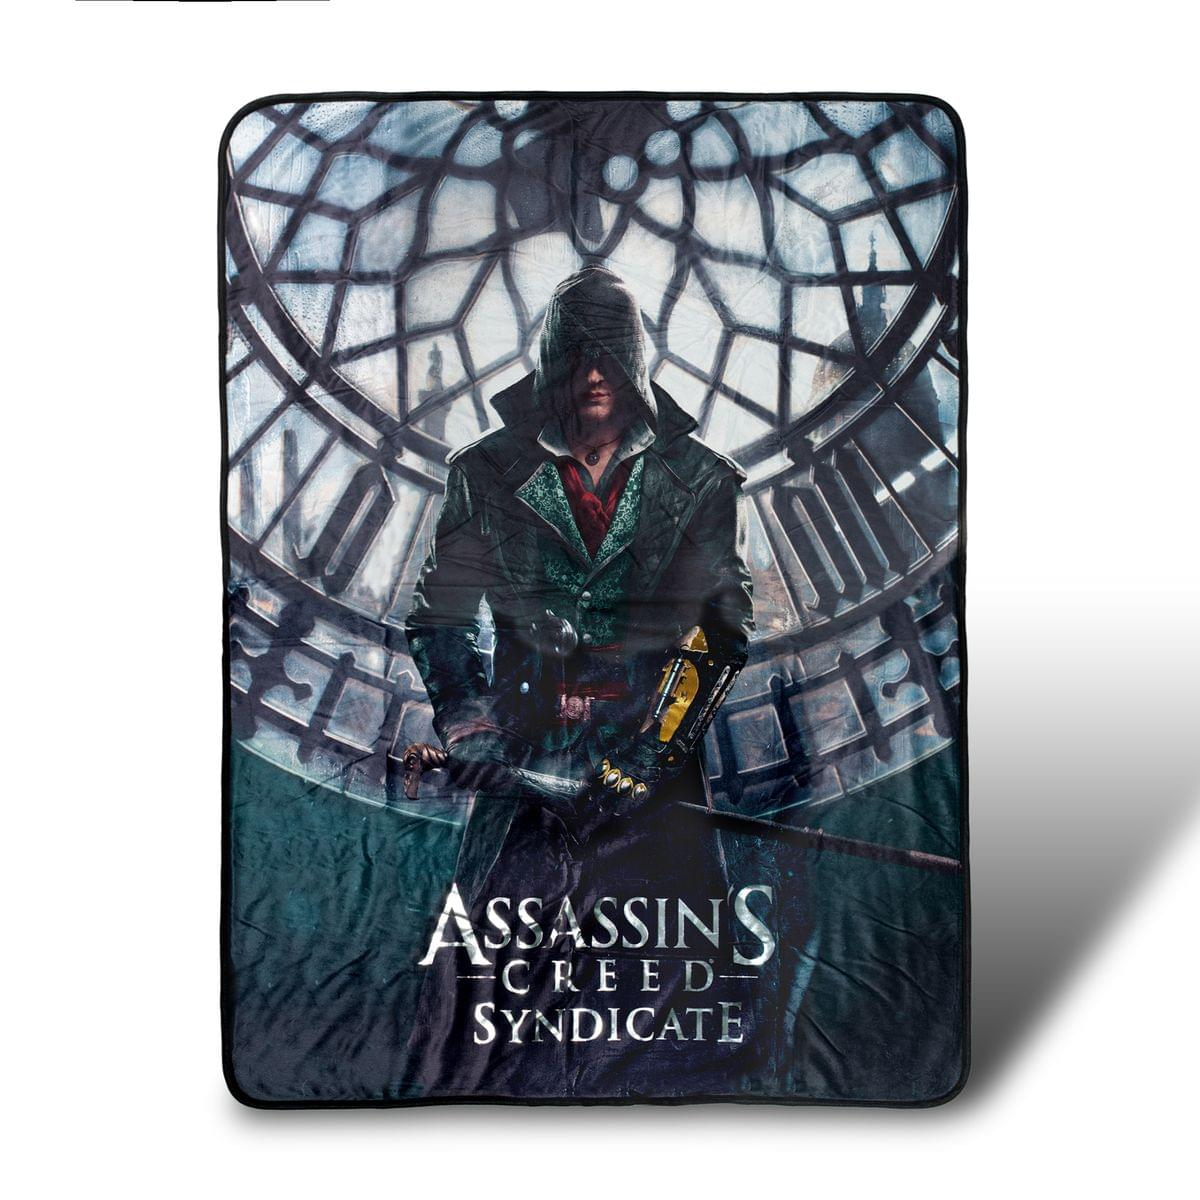 Assassin's Creed Syndicate Lightweight Fleece Throw Blanket | 45 x 60 Inches